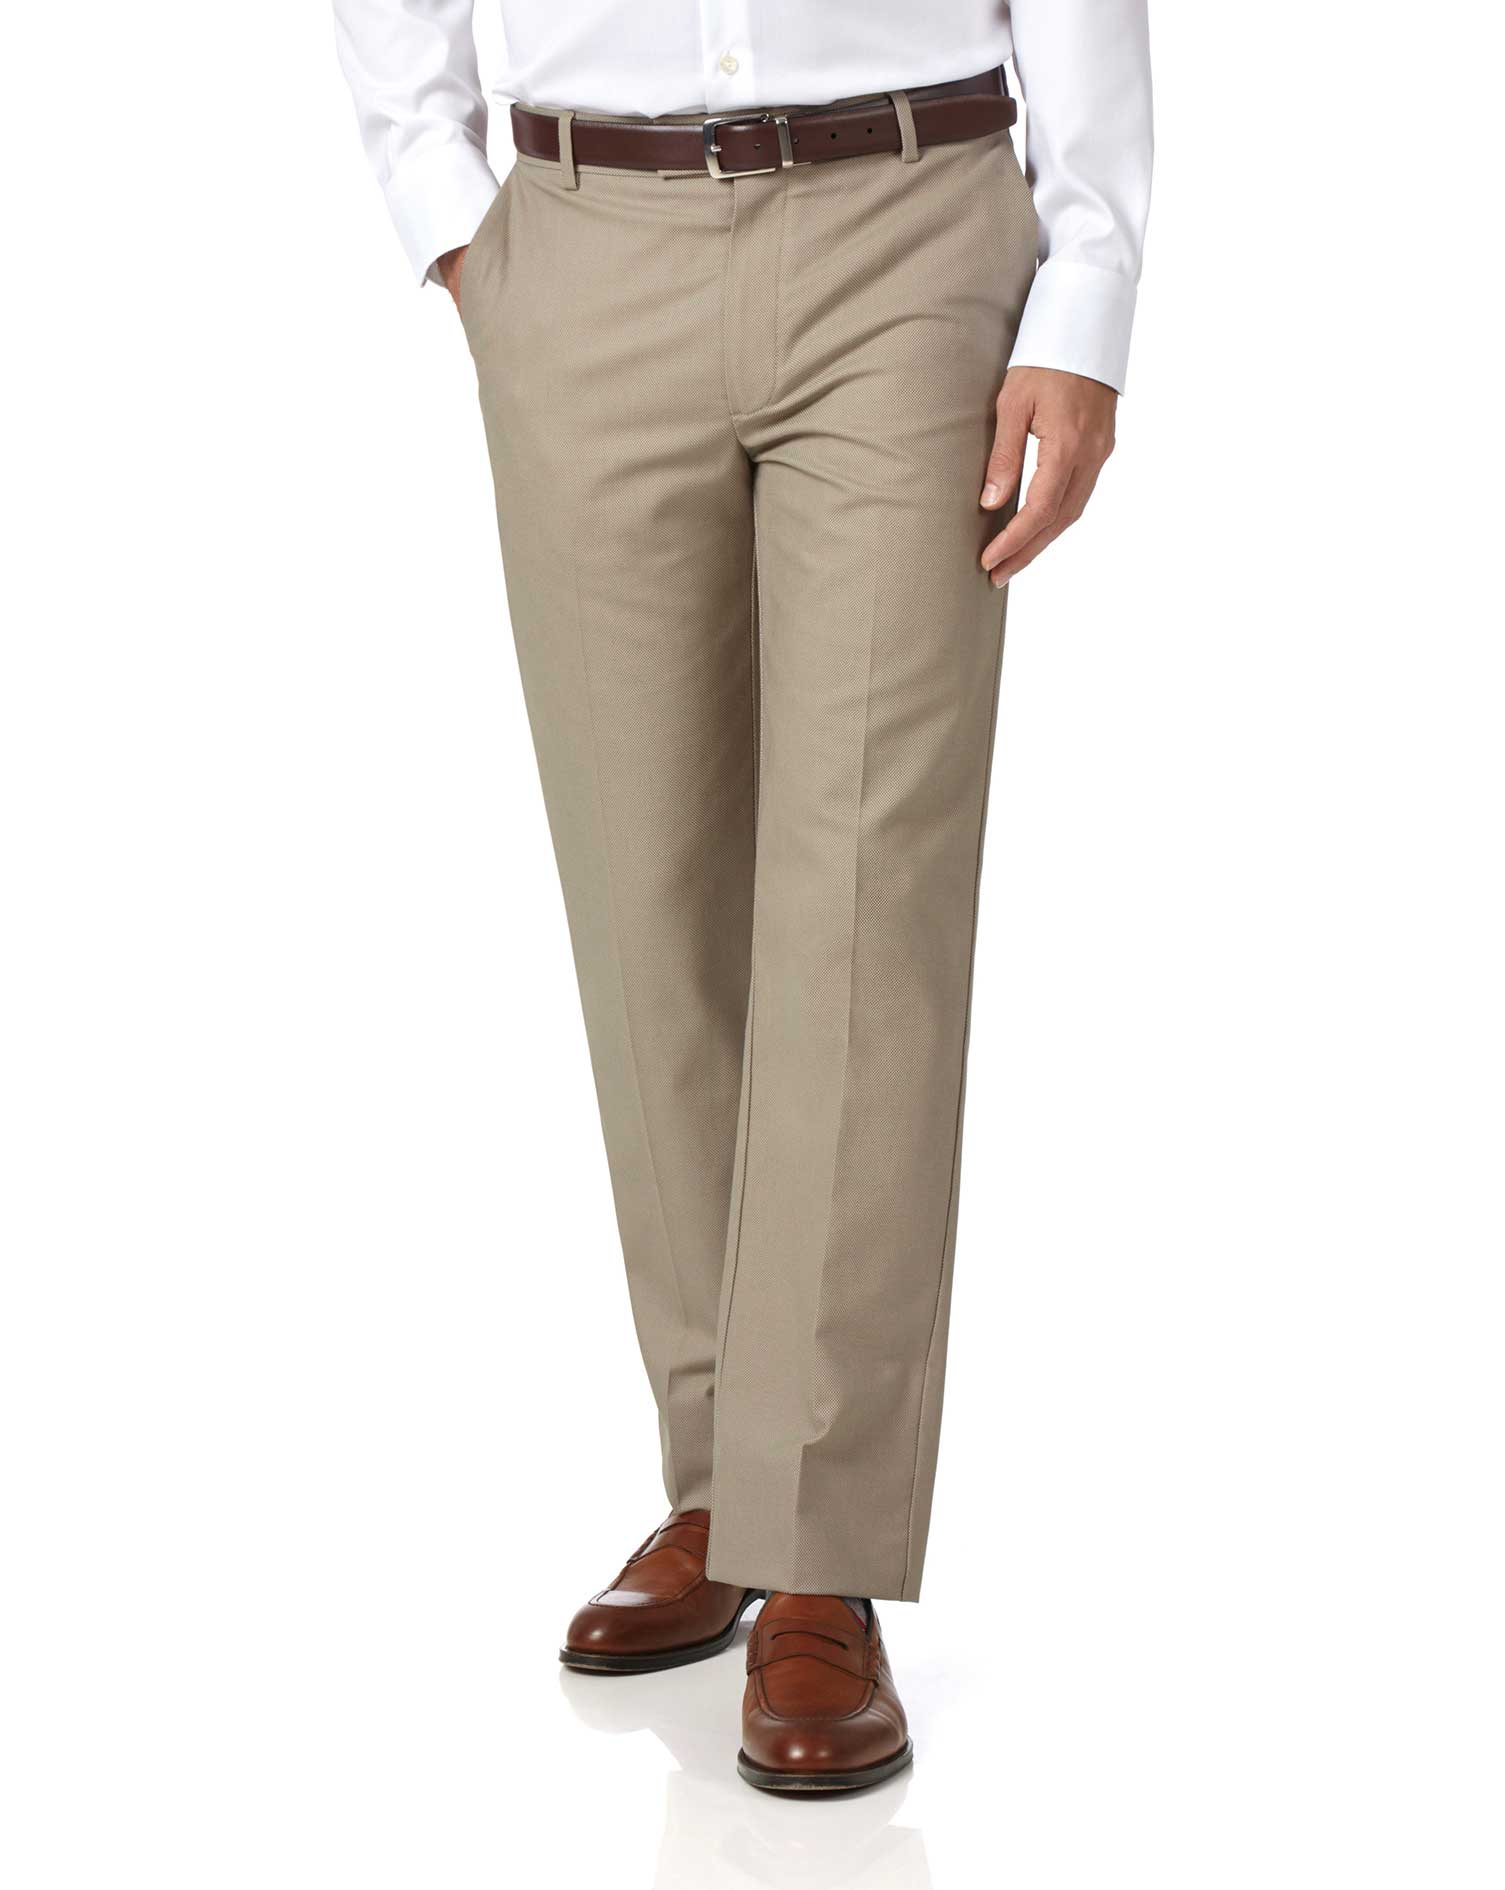 Stone Classic Fit Stretch Non-Iron Trousers Size W32 L30 by Charles Tyrwhitt